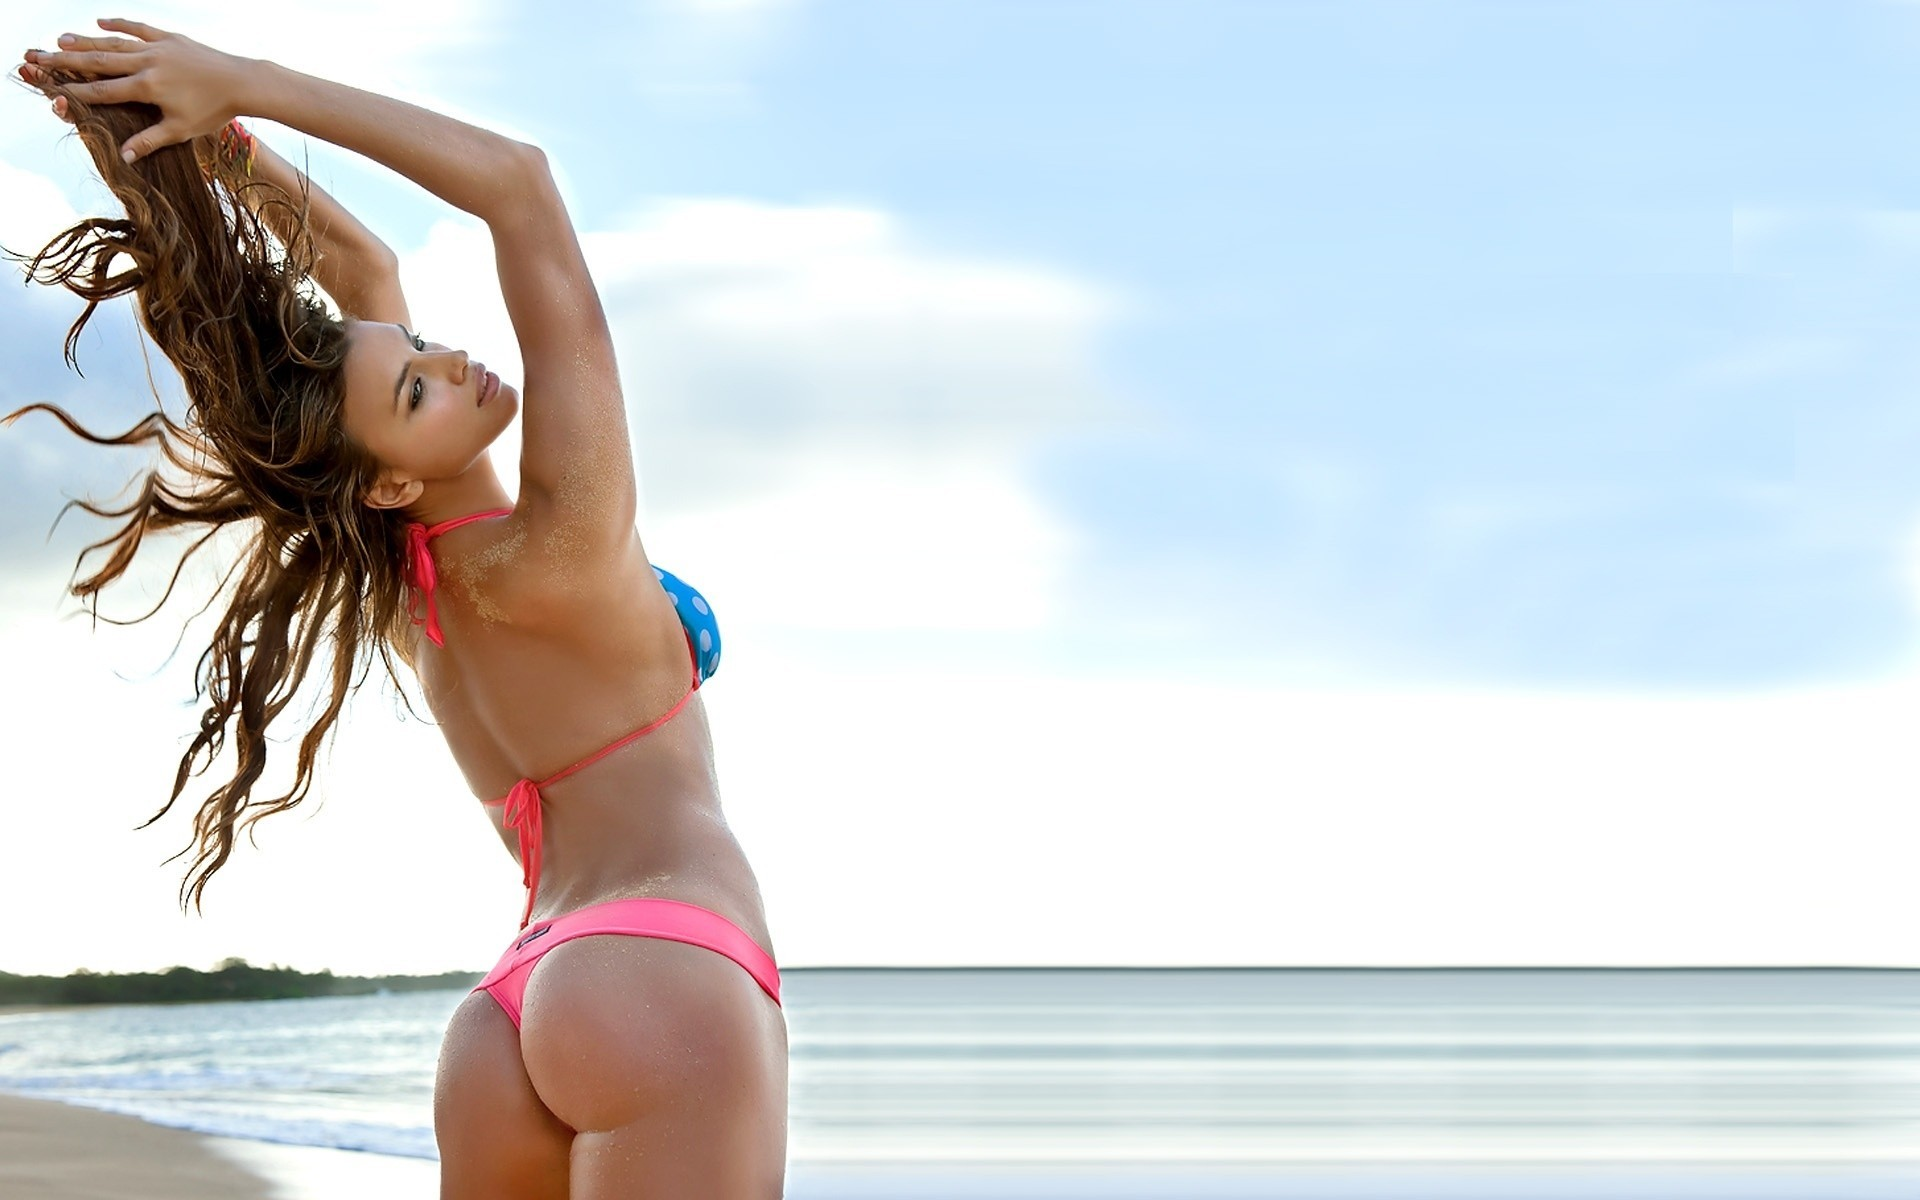 Women bikini beach ass HD Wallpaper